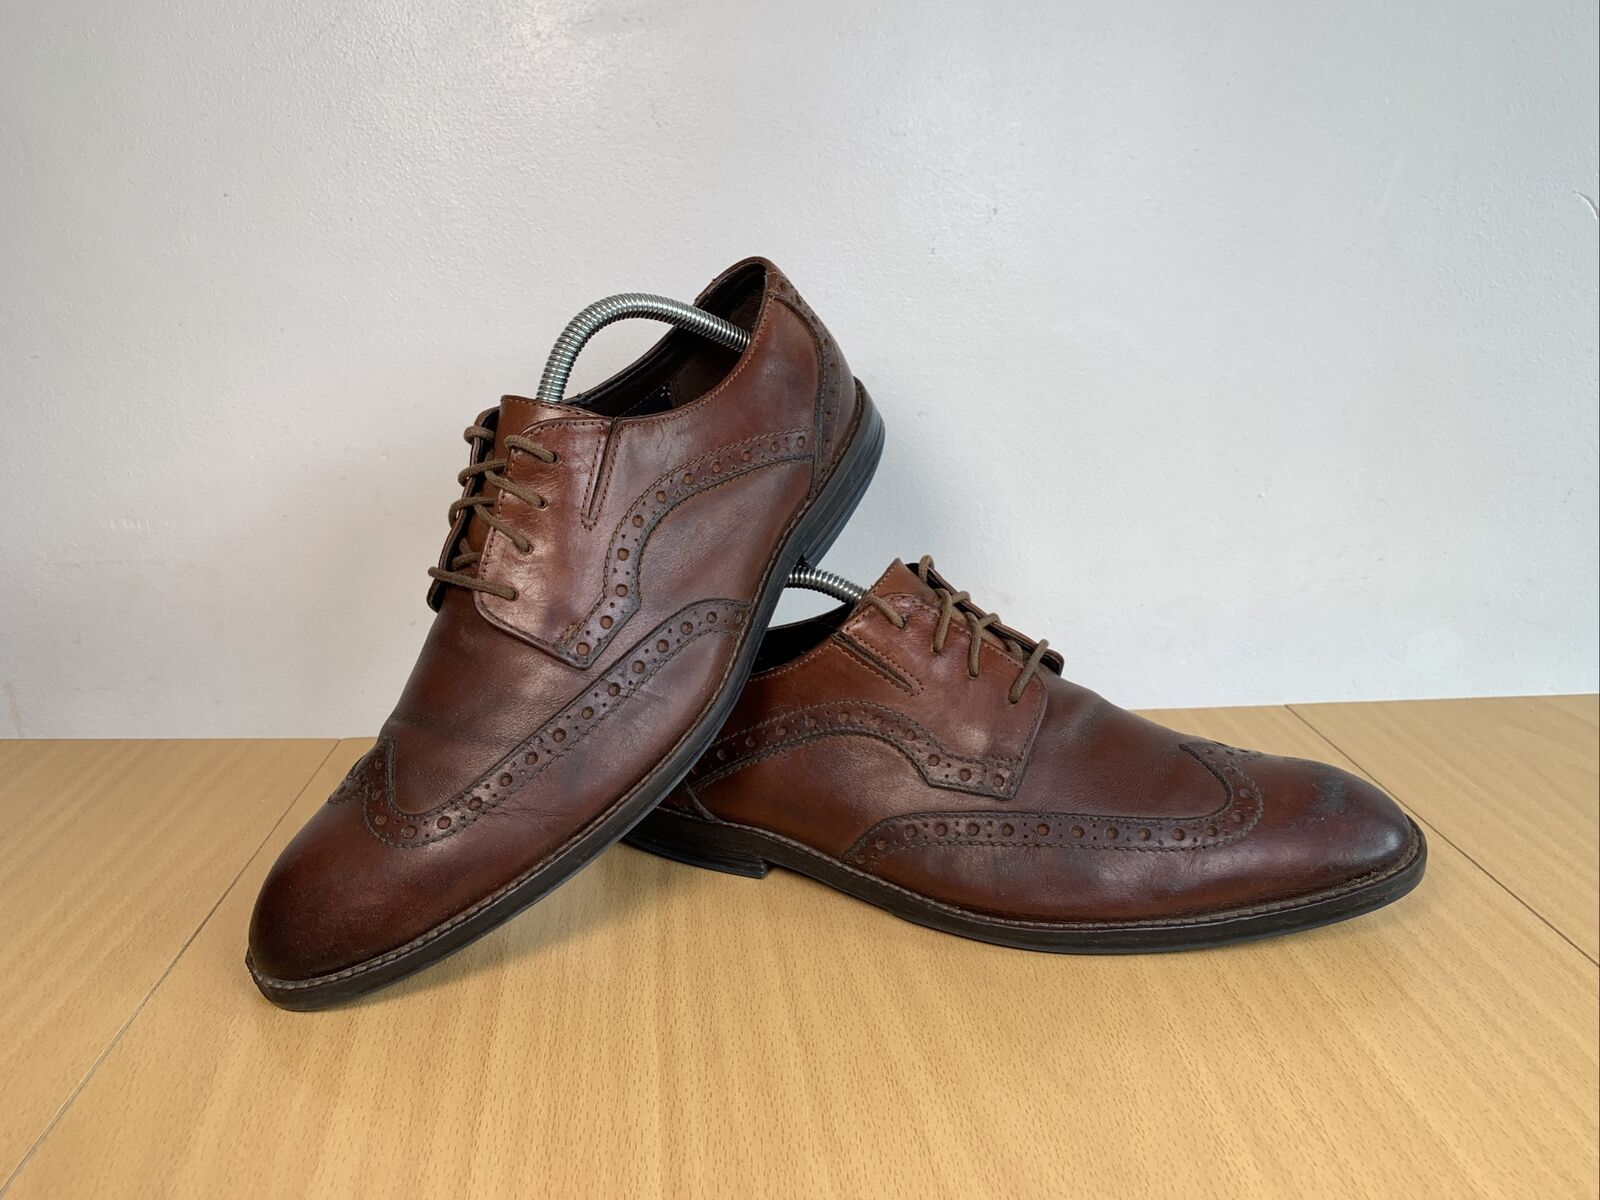 Clarks Tor England Brown Leather Men's Shoes Size UK 8 EU 42